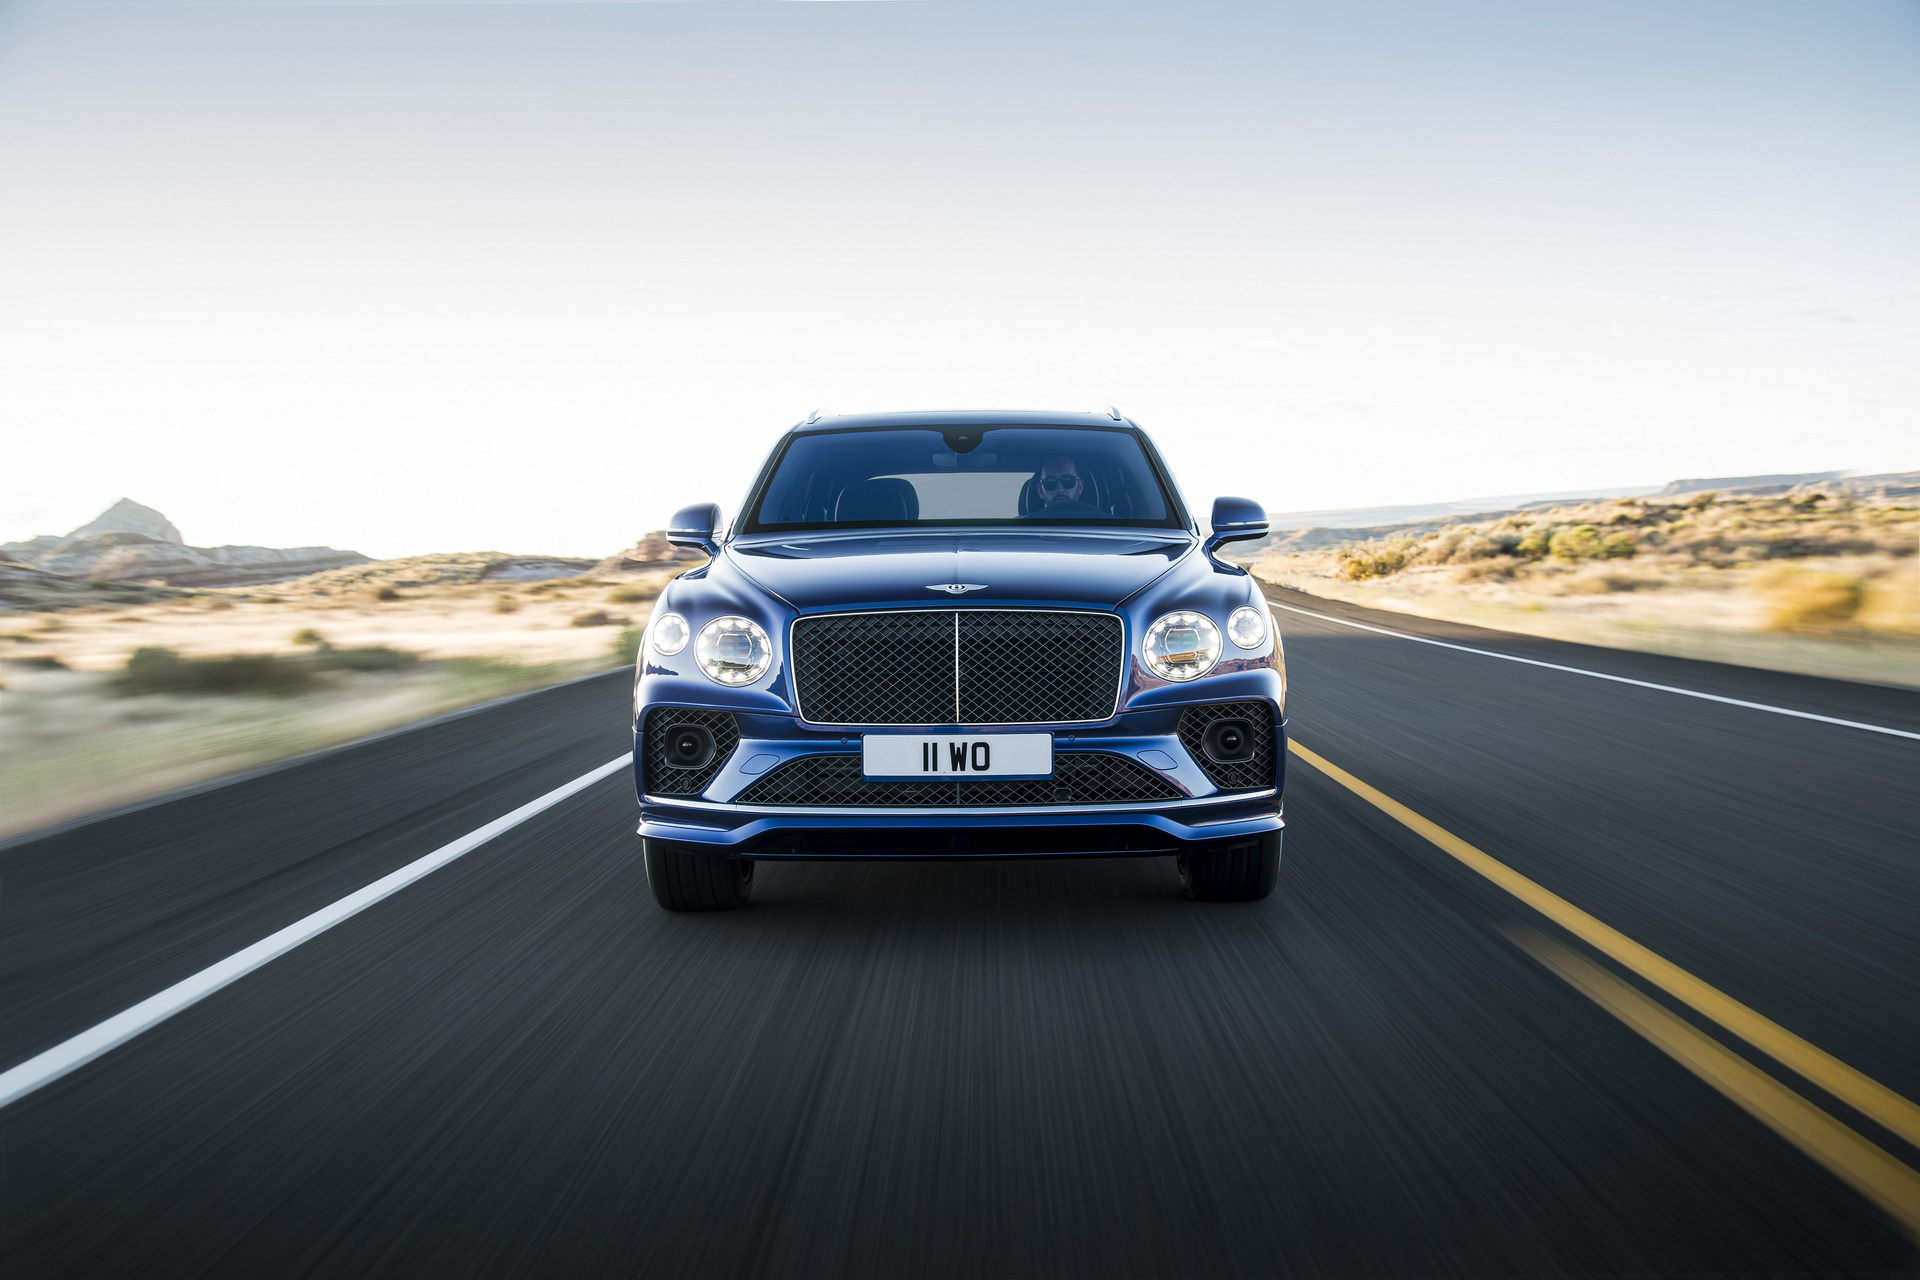 2021-bentley-bentayga-speed-4-1.jpg